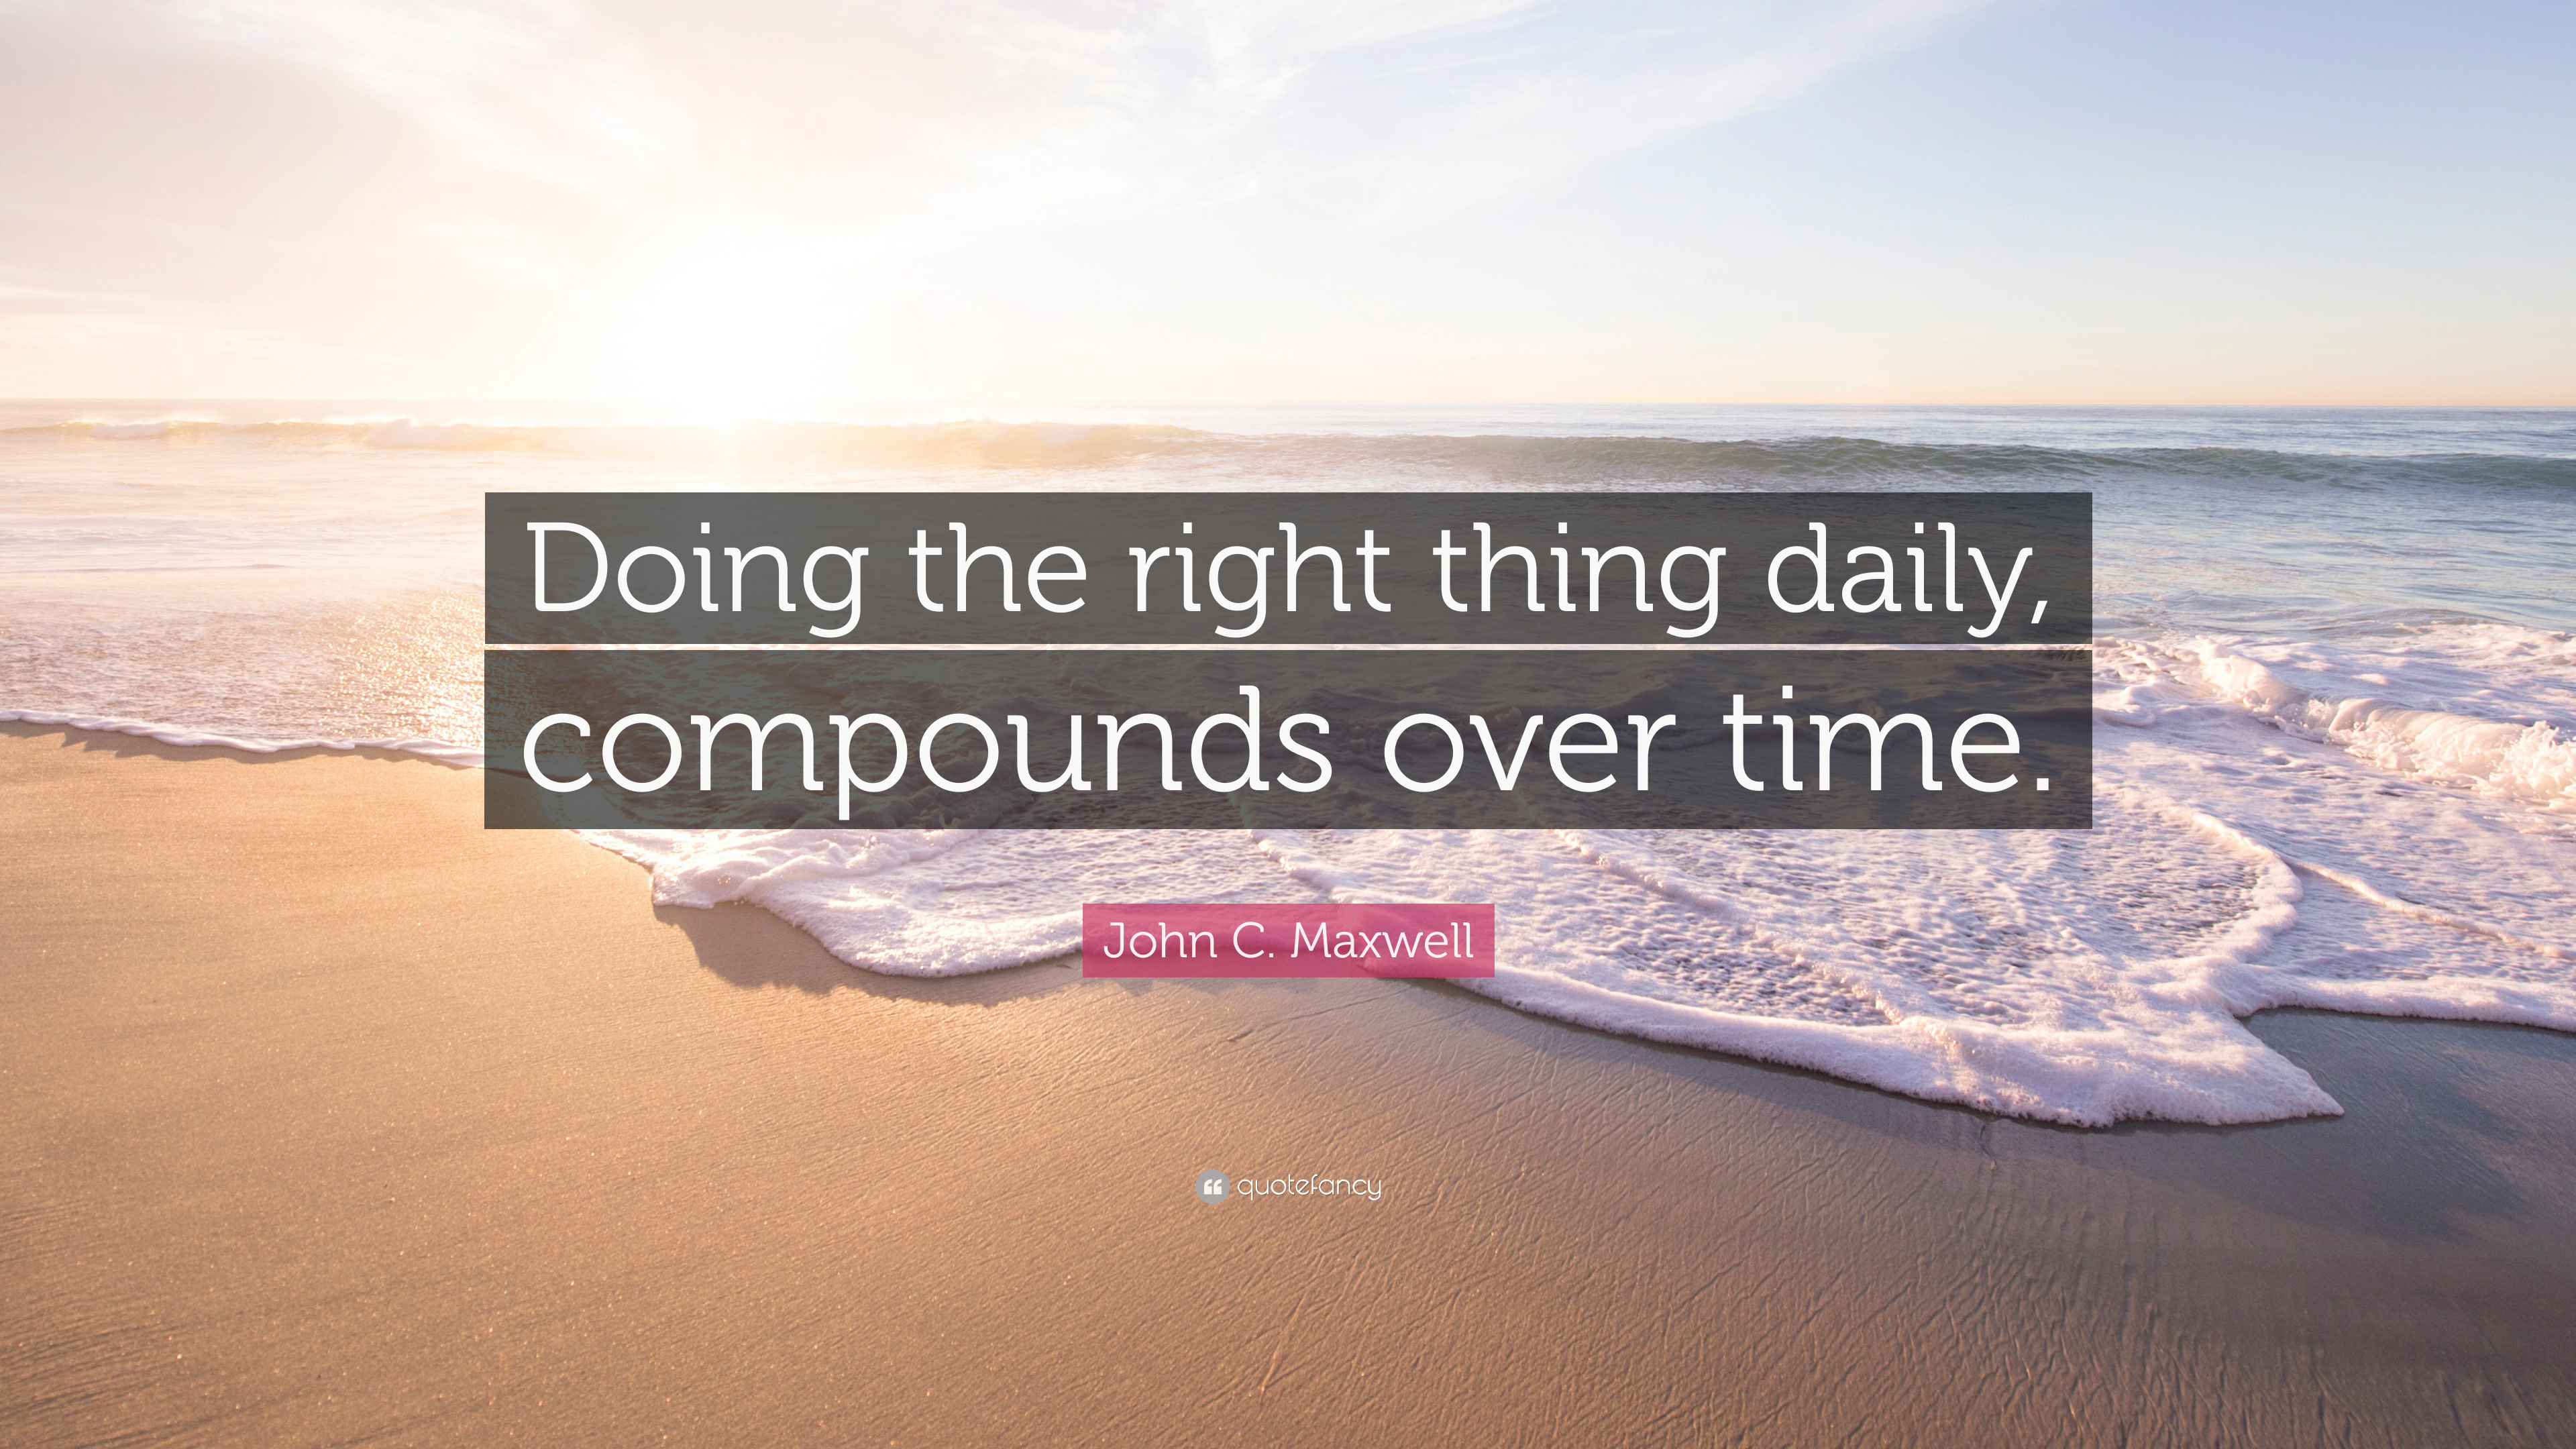 John C Maxwell Quote Doing The Right Thing Daily Compounds Over